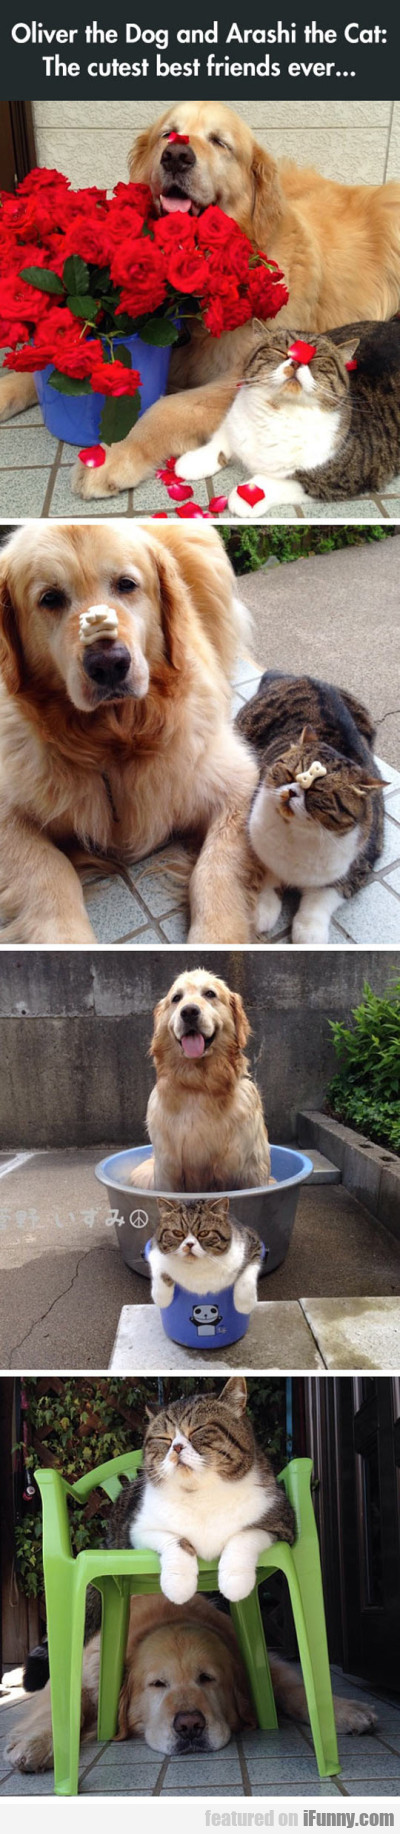 Oliver The Dog And Arashi The Cat - The Cutest...